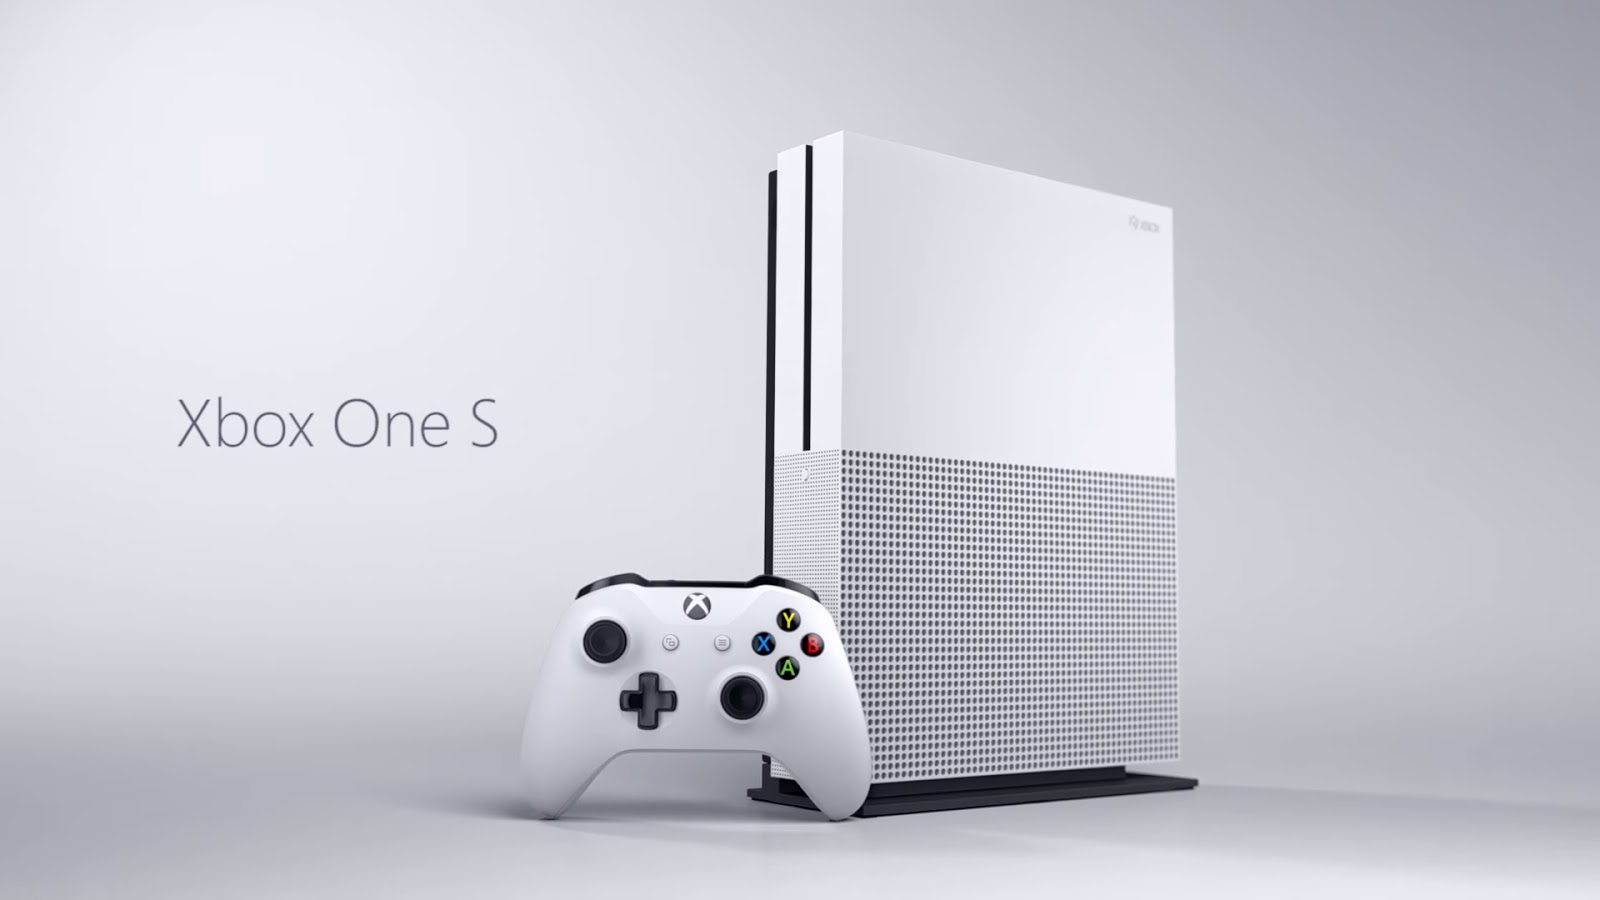 Microsoft's new Xbox One S goes on sale this August for $299